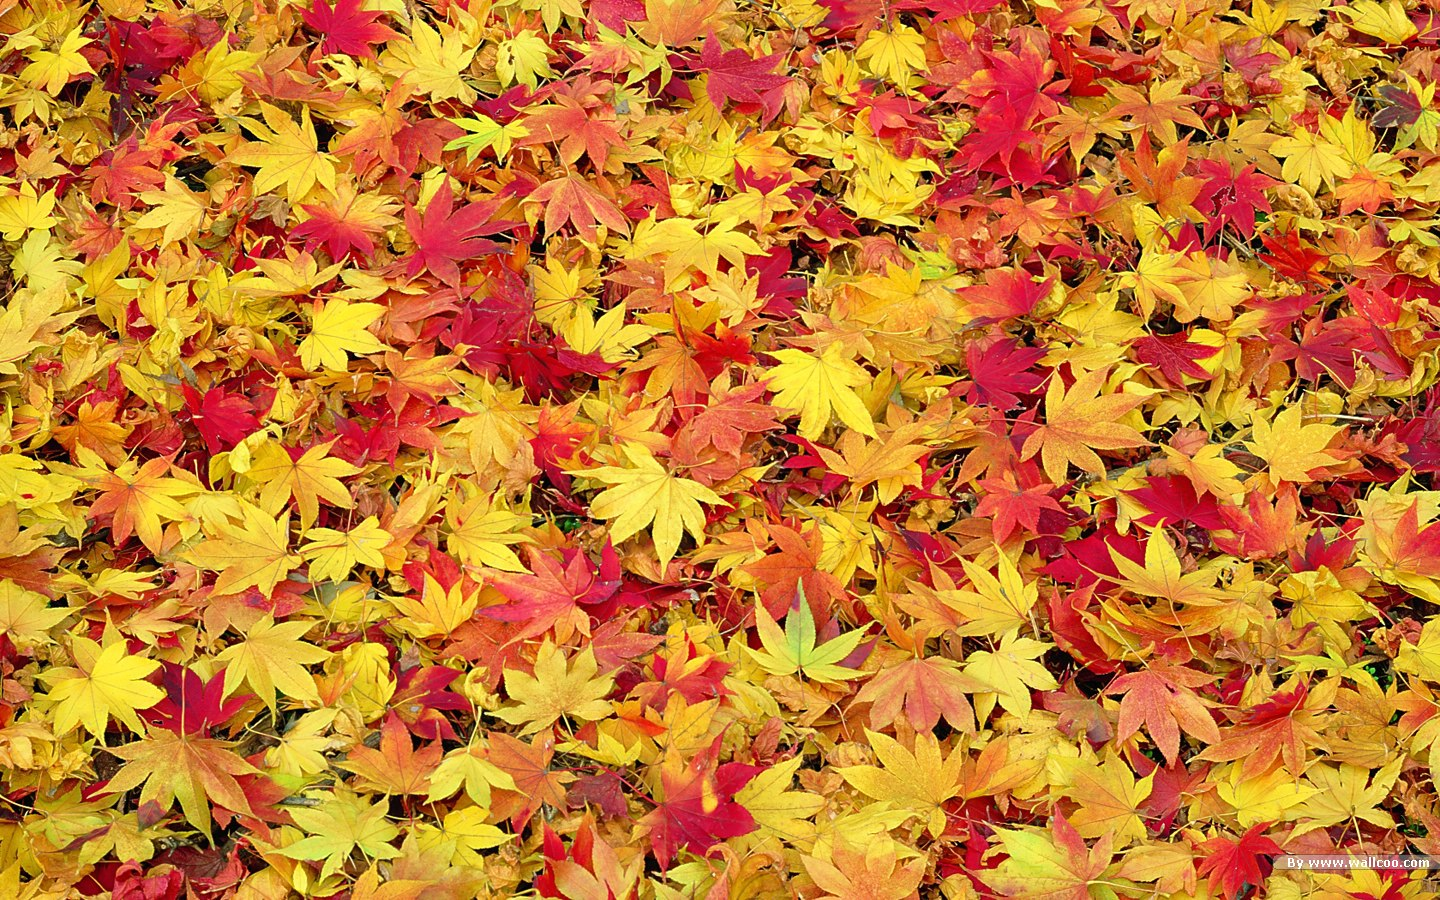 78 Best images about fall leaves on Pinterest | Fall leaves